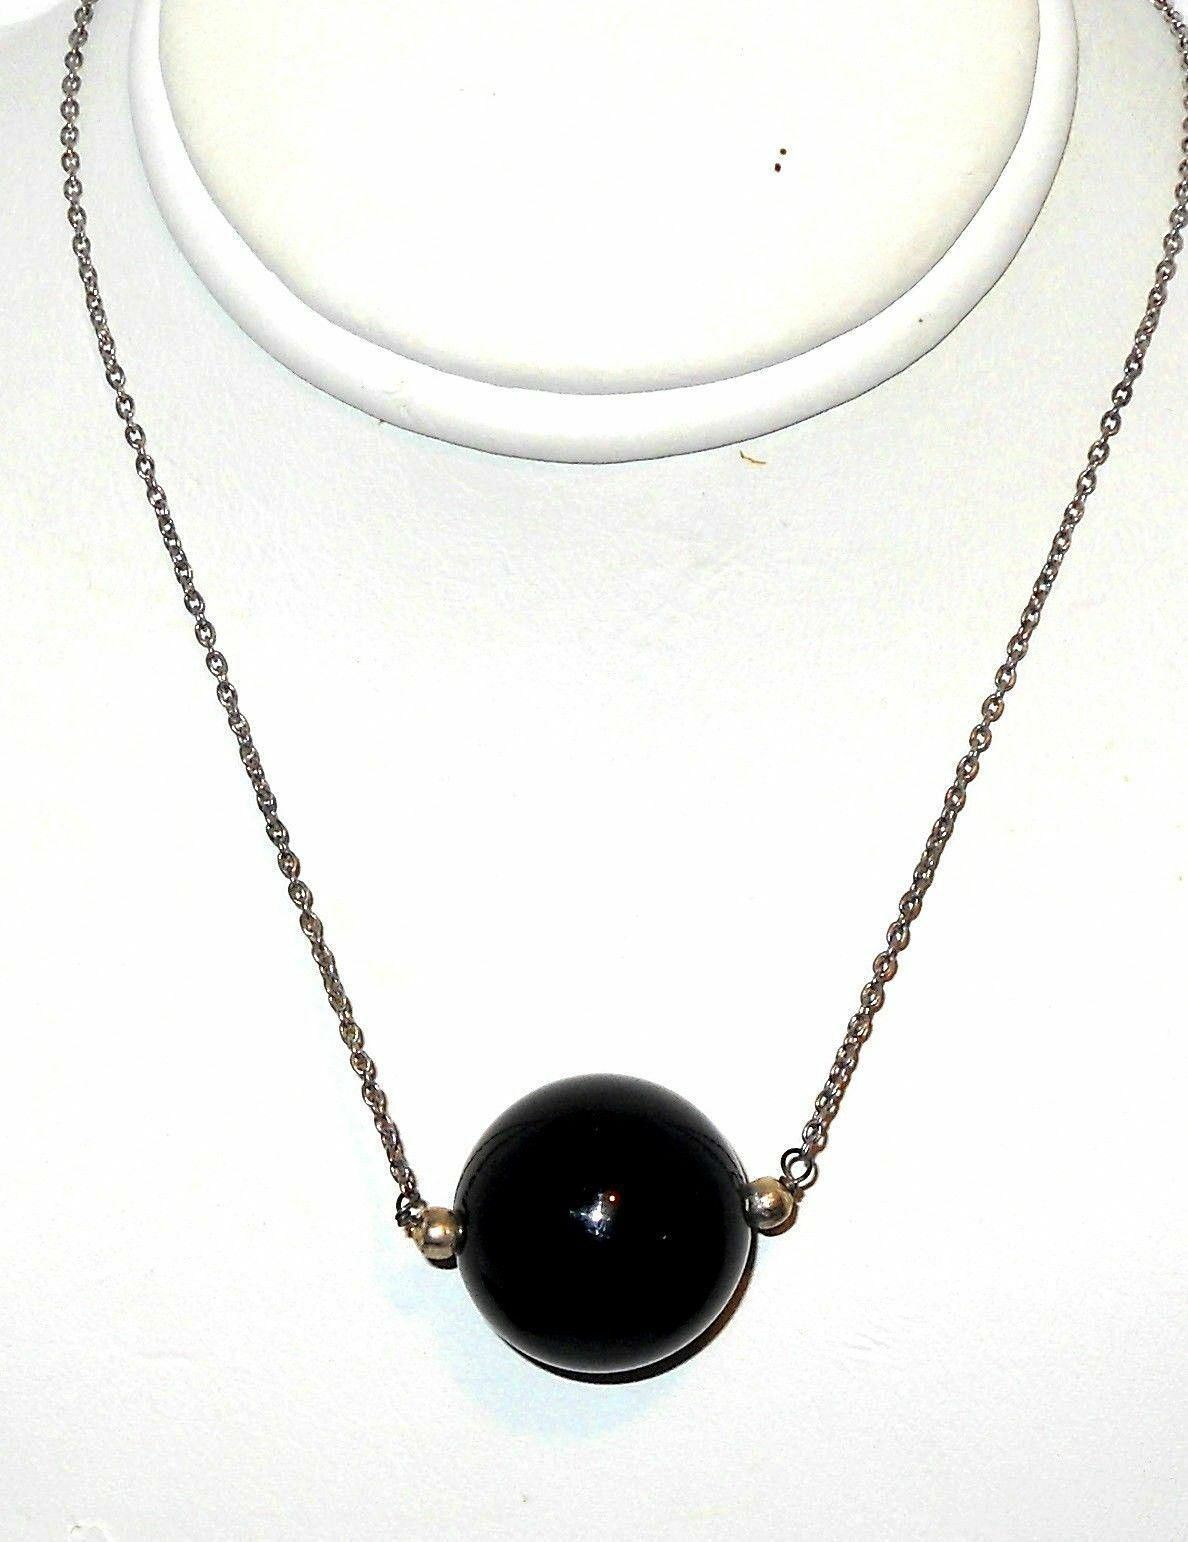 Black Onyx 16 MM  Round Ball sterling silver Necklace  31 carats